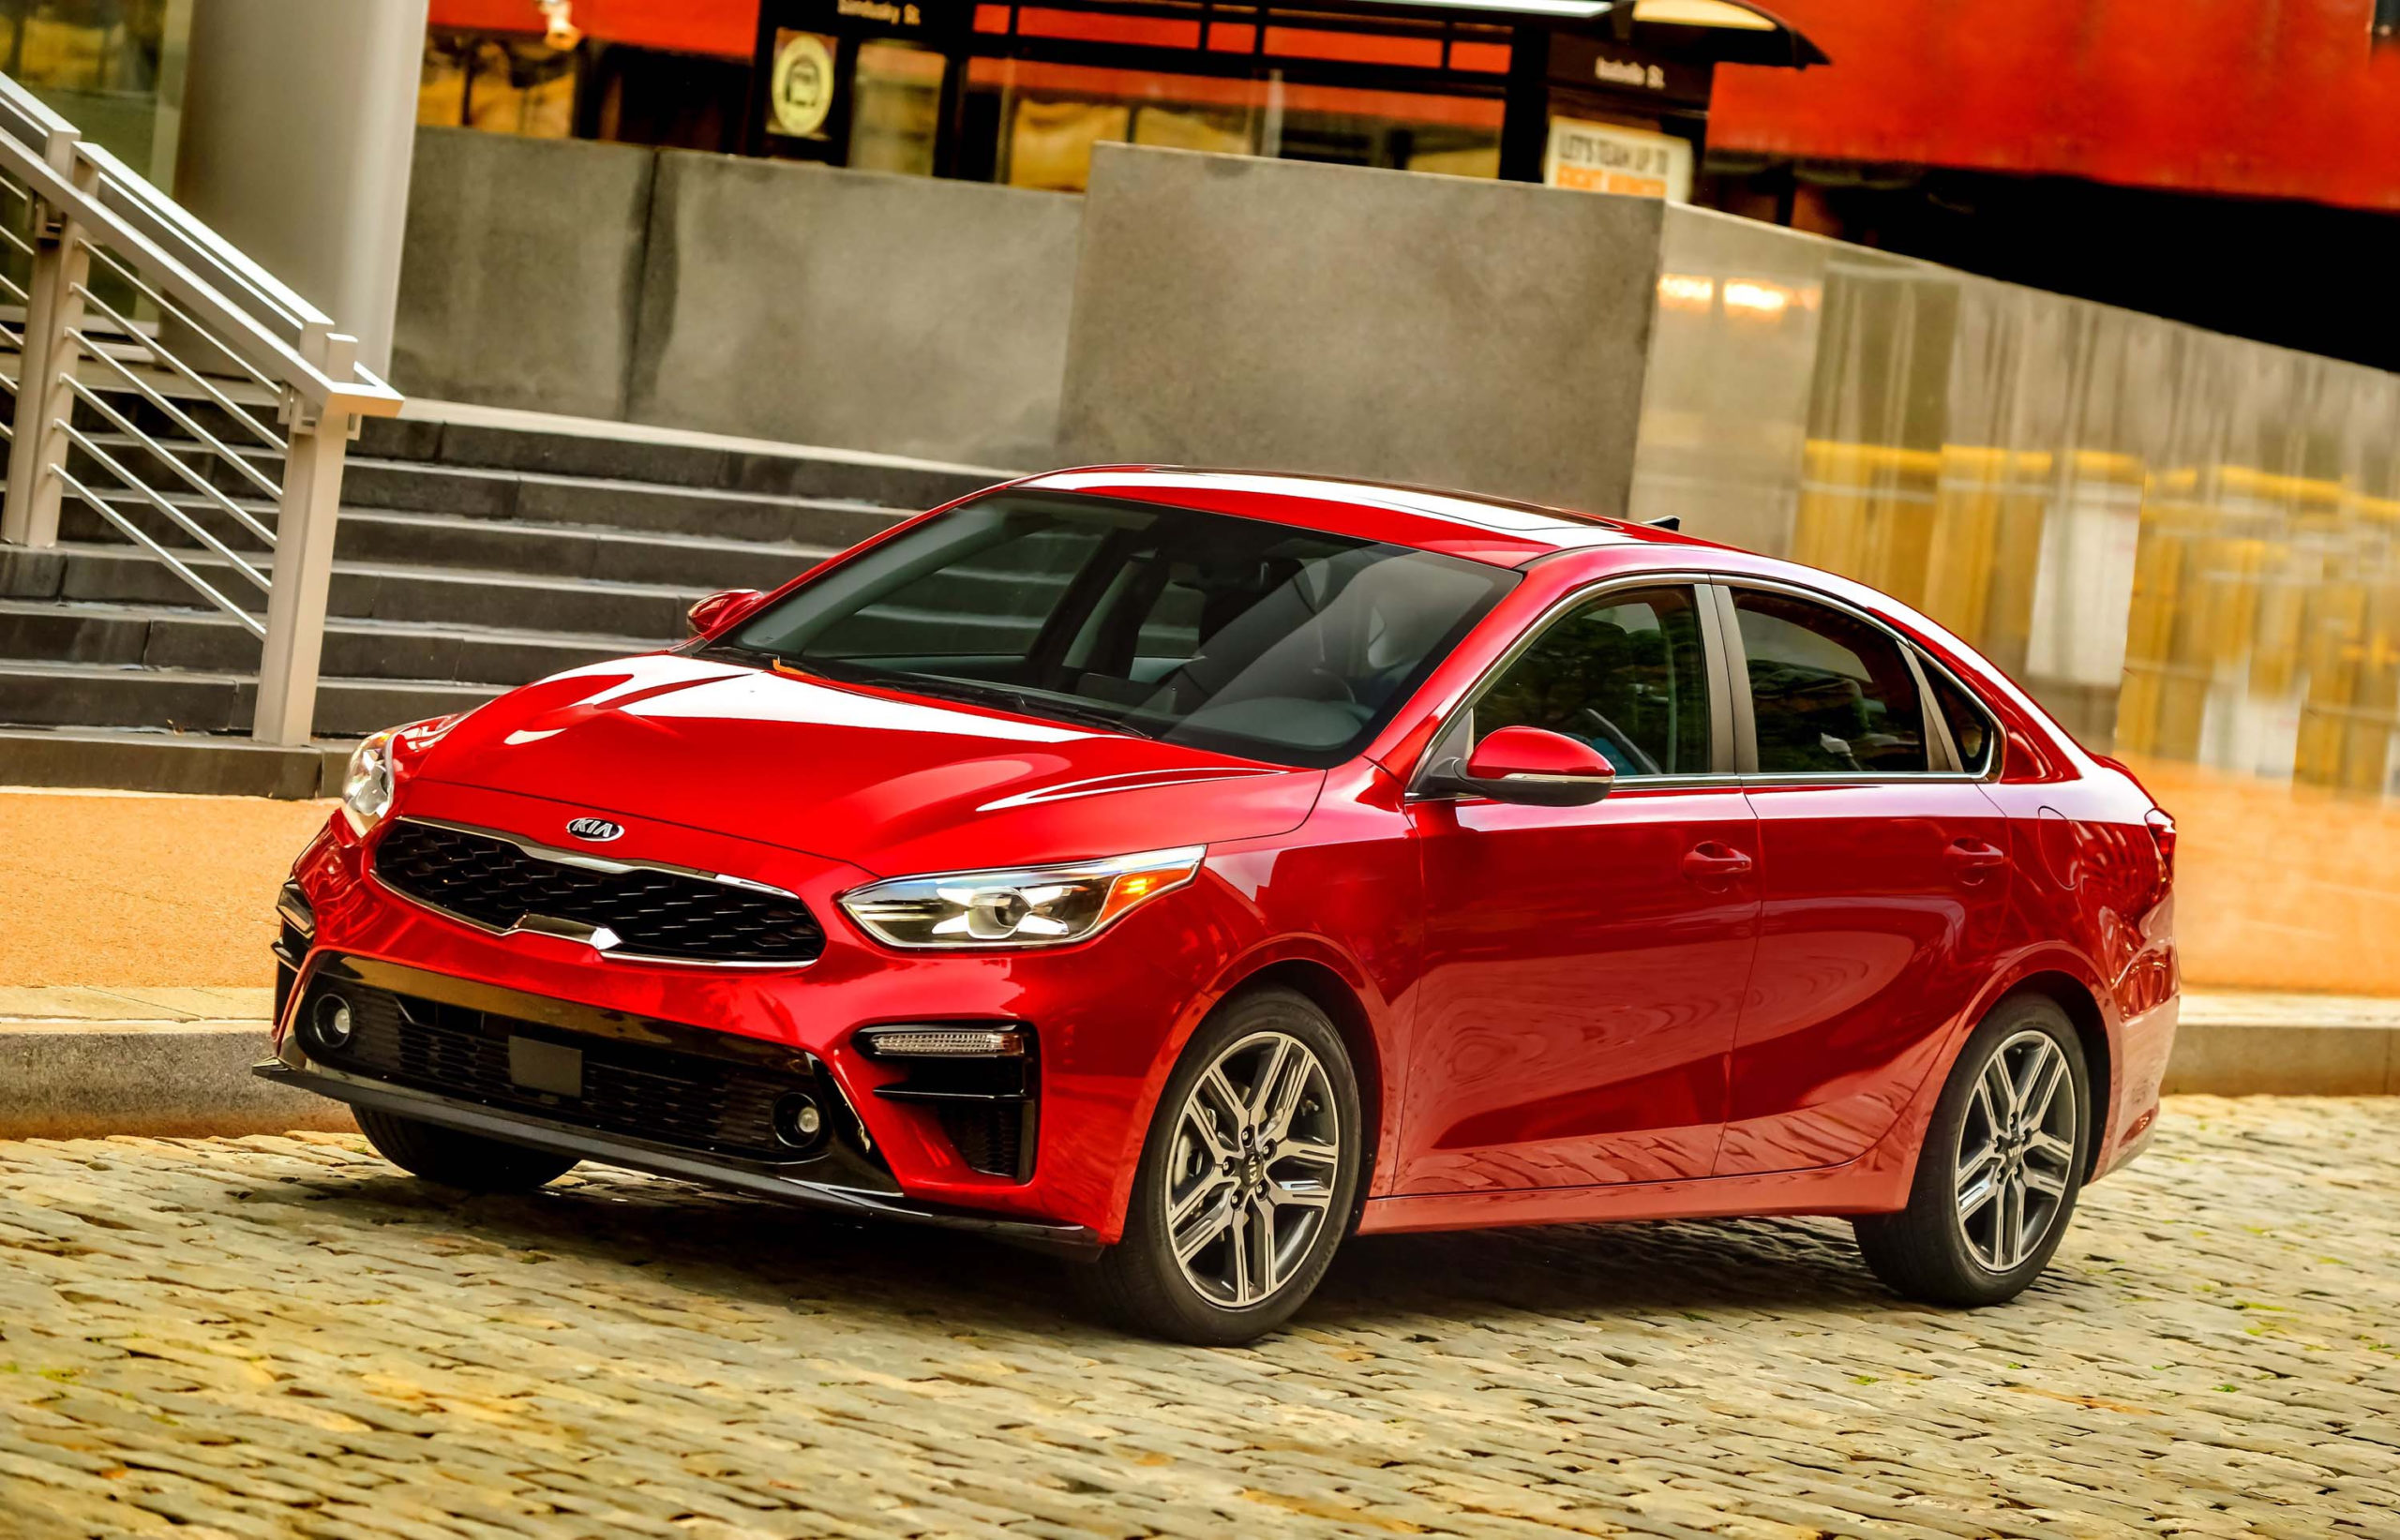 2019 Kia Forte First Drive: Compact Car Blues Wiped Away - 2022 Kia Forte Fe Electric Interior, Transmission Changes